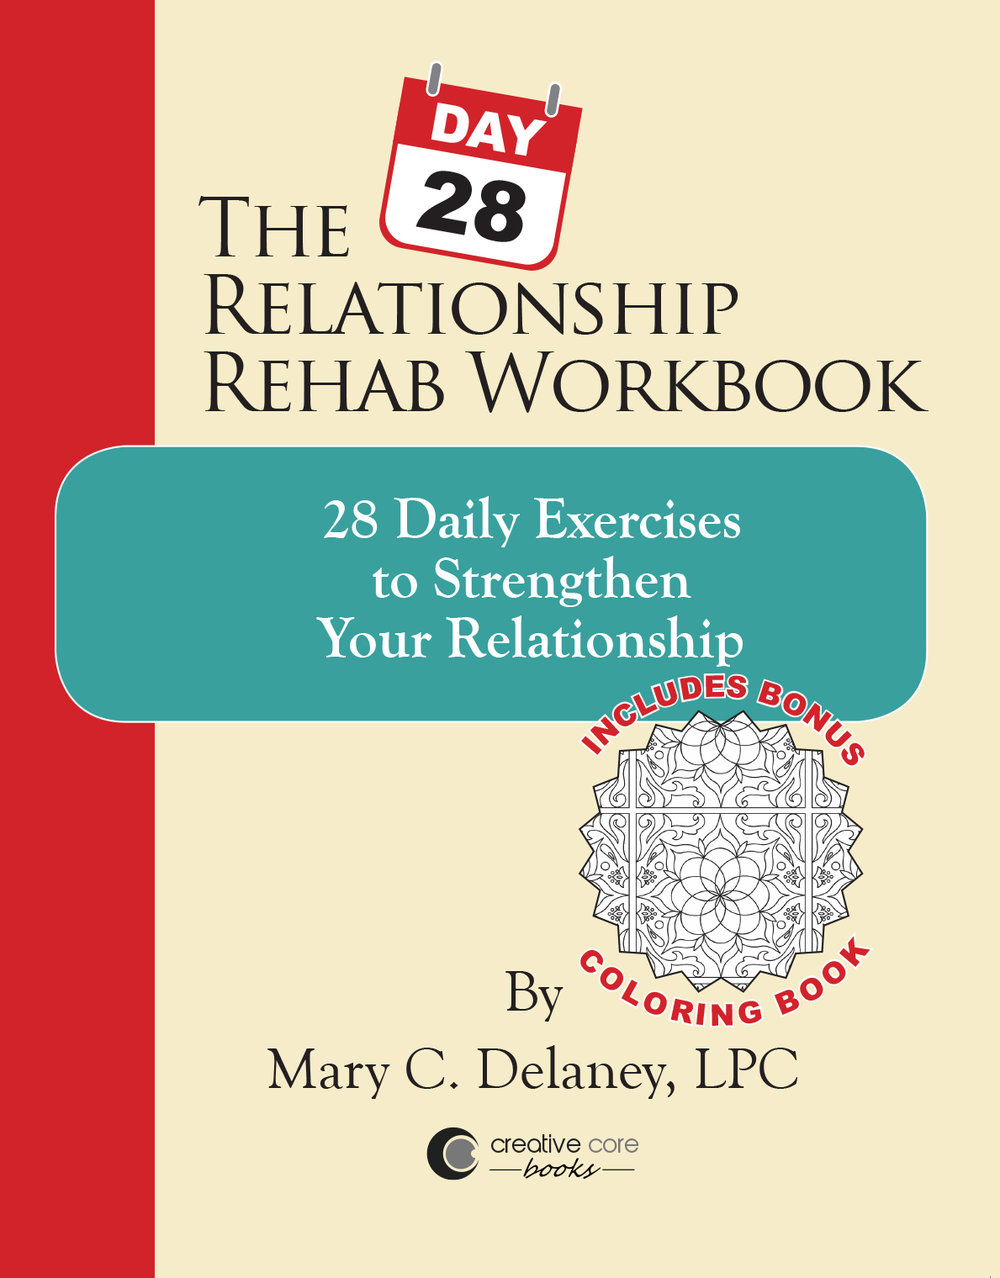 Now Available - Click video below to learn more about The 28-Day Relationship Rehab Workbook by Mary C. Delaney